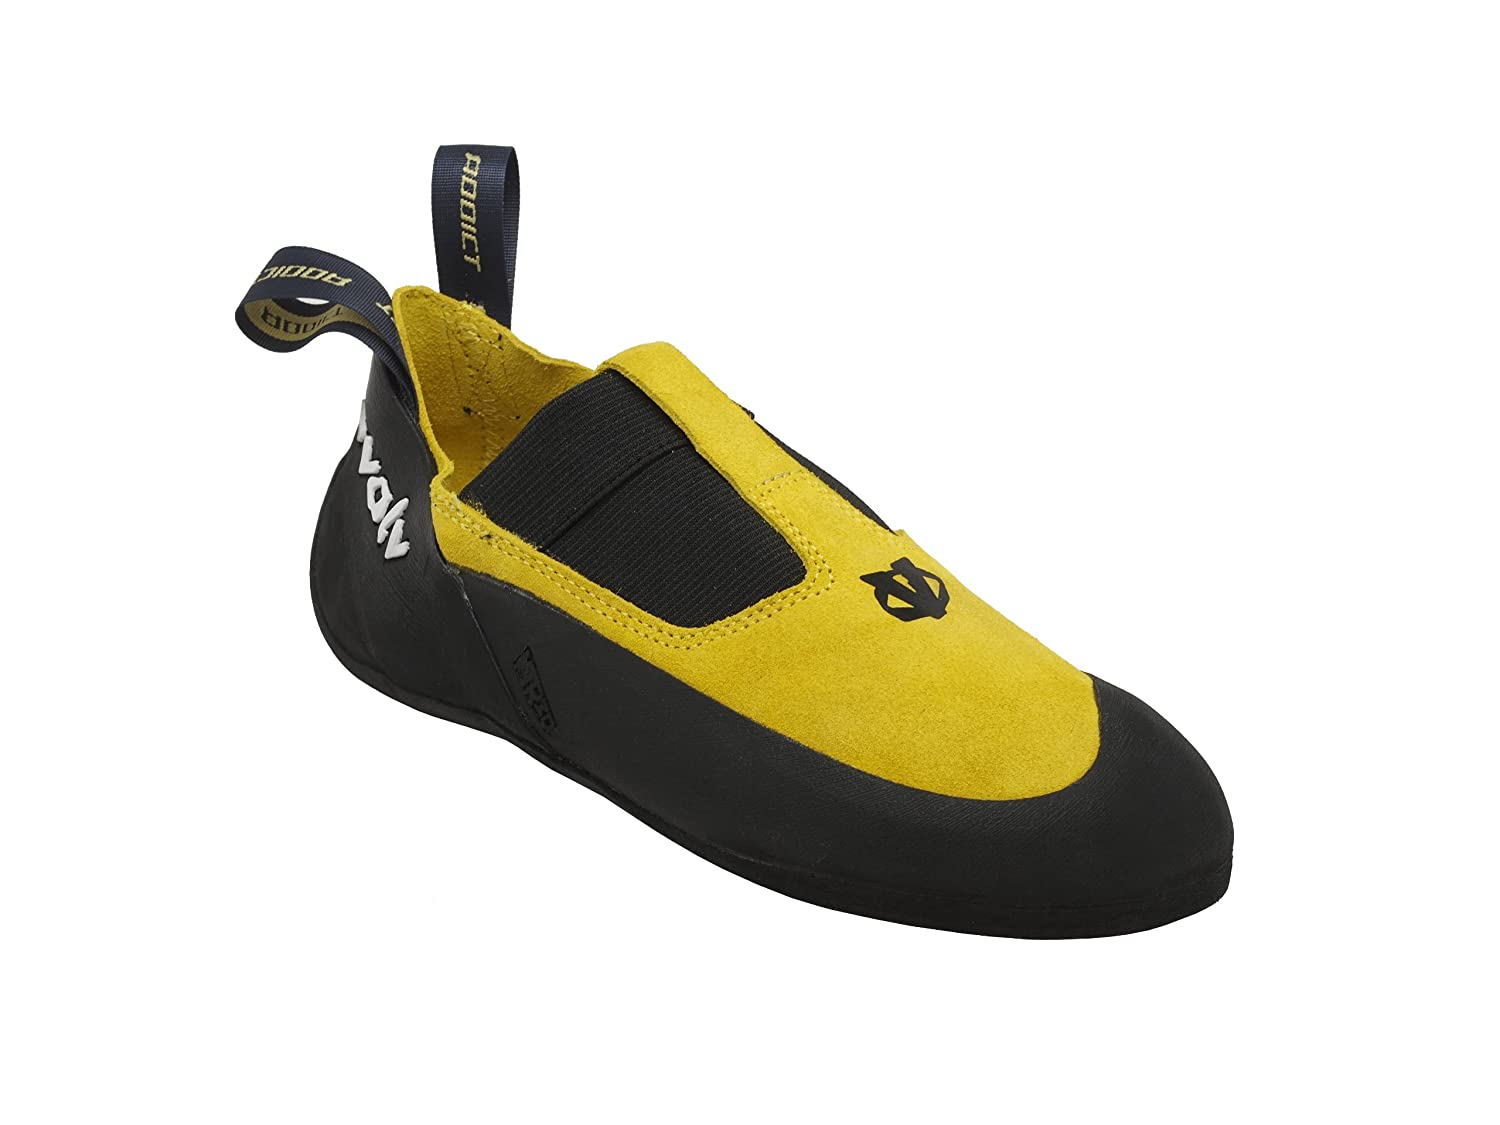 Evolv Addict Climbing Shoe D(M) B00E41RXJC 4.5 D(M) Shoe US|Yellow c020da